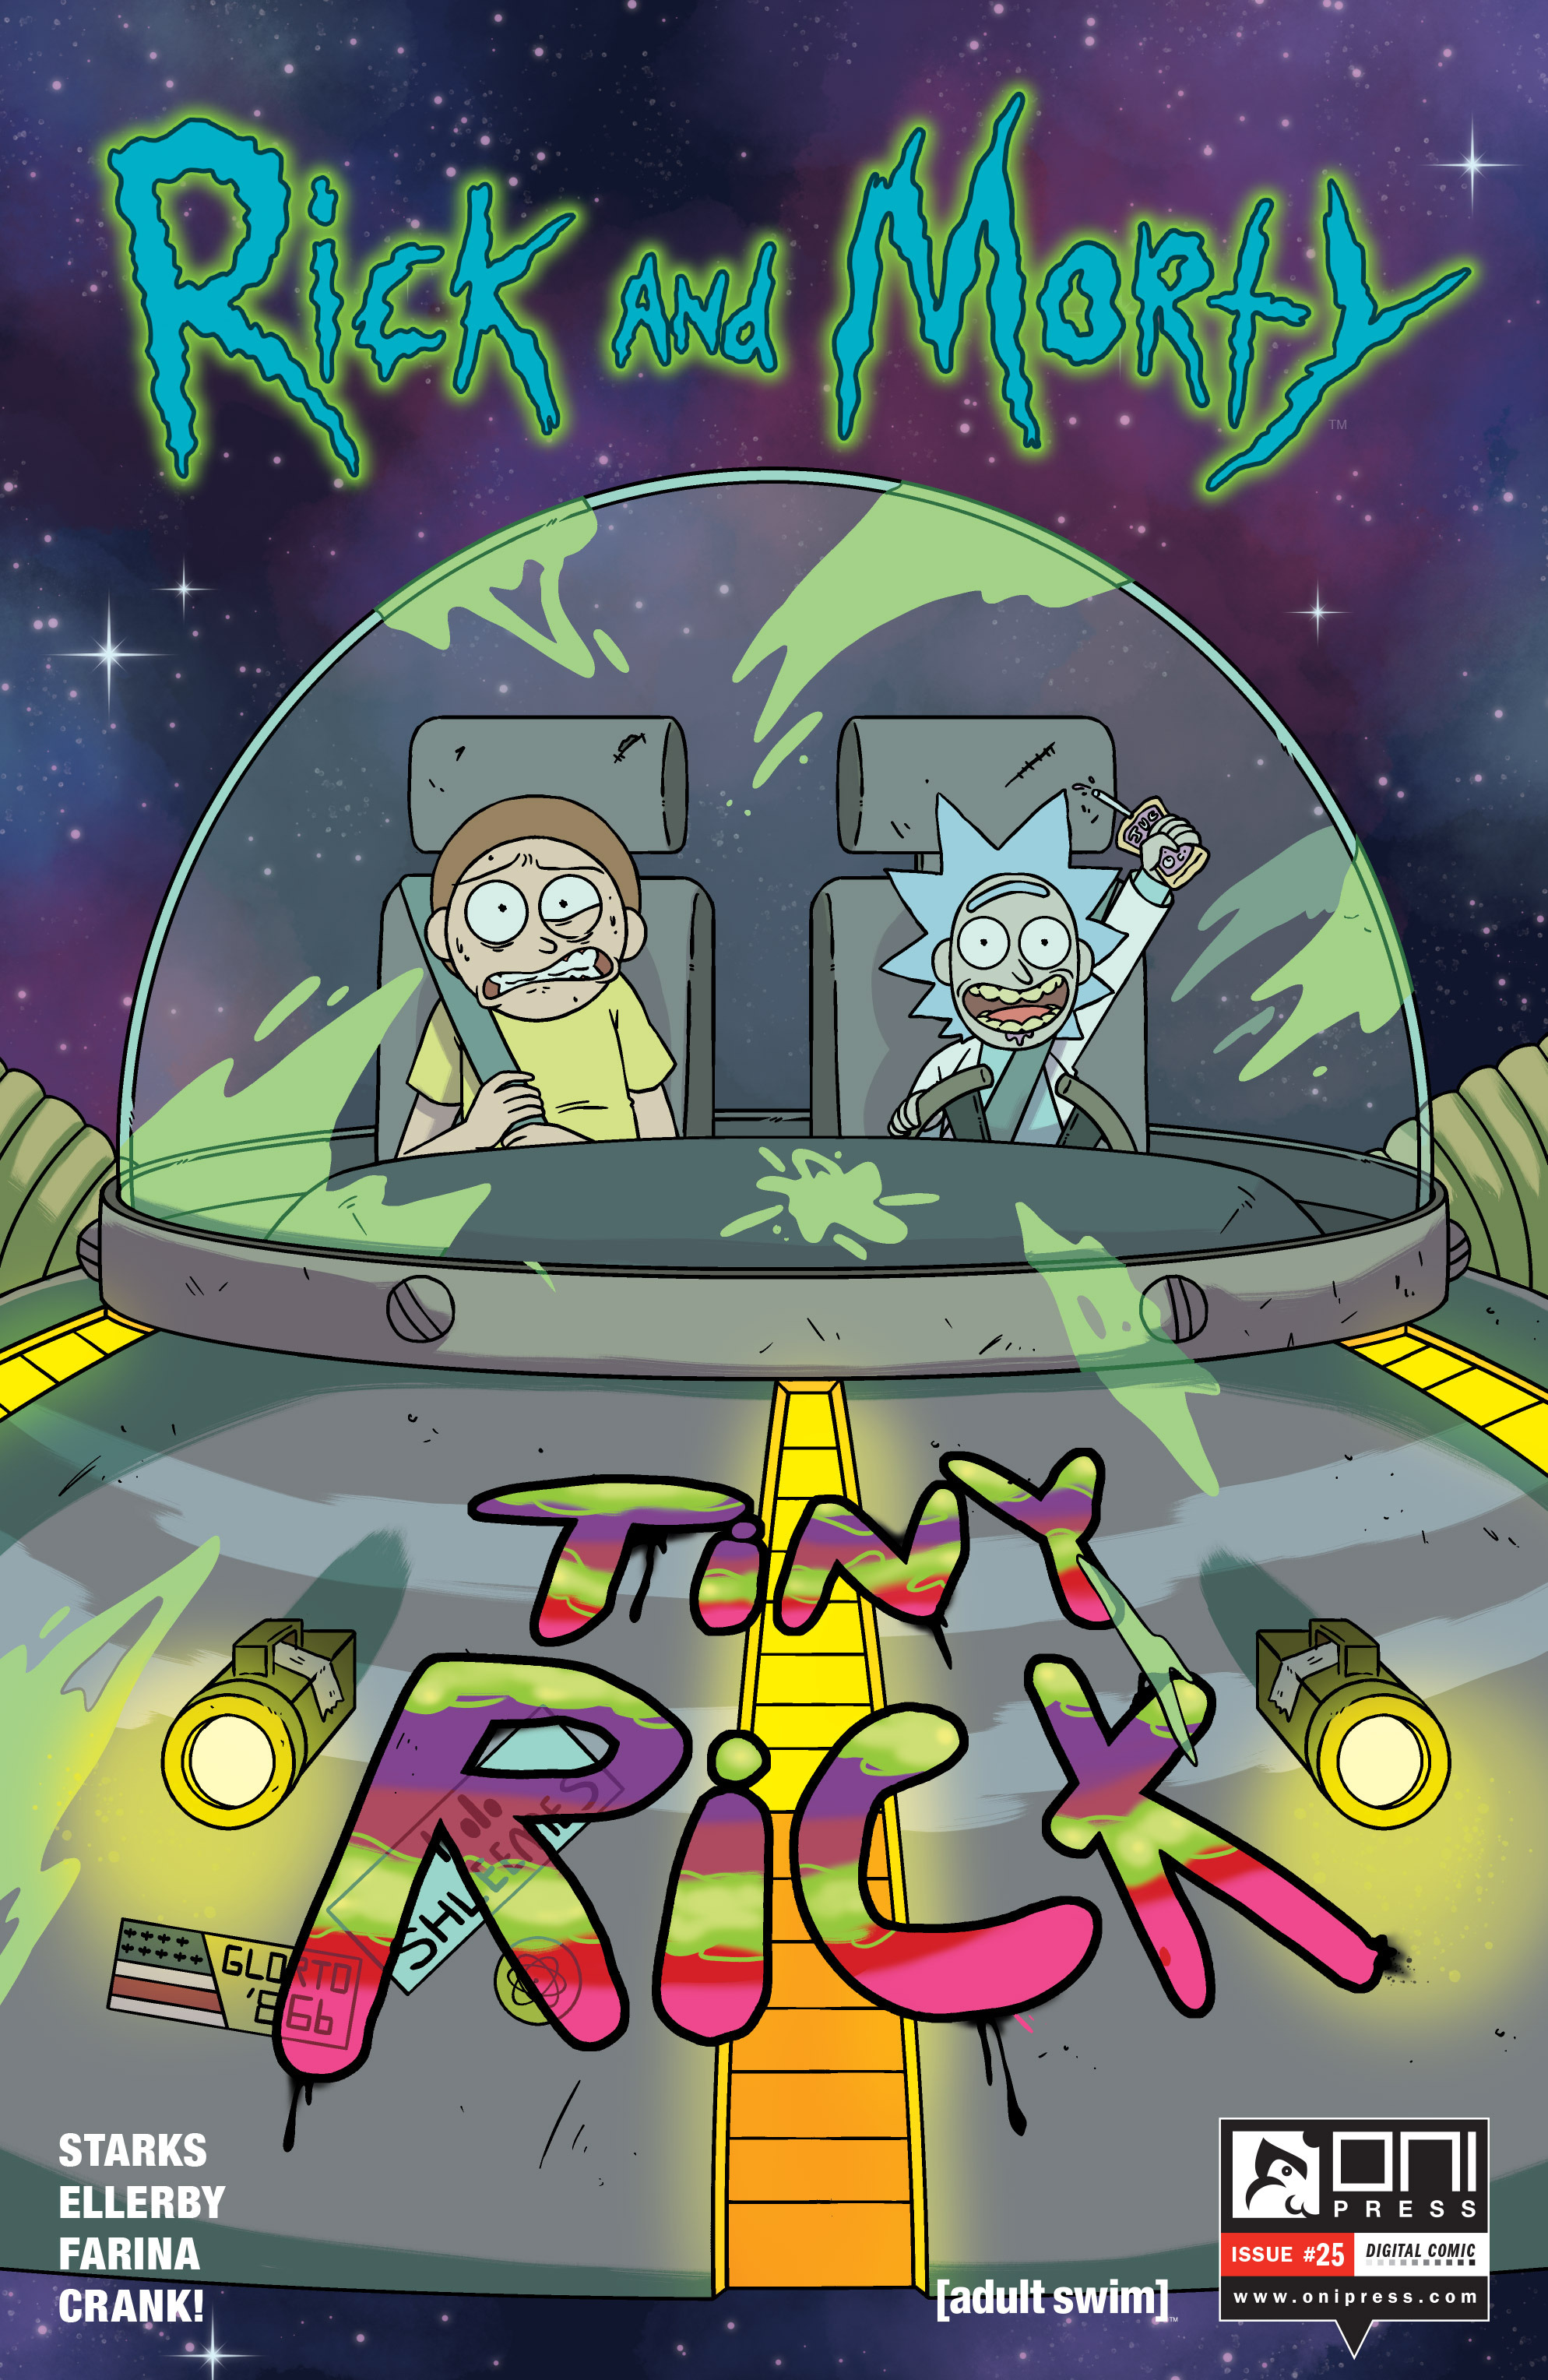 Read online Rick and Morty comic -  Issue #25 - 1